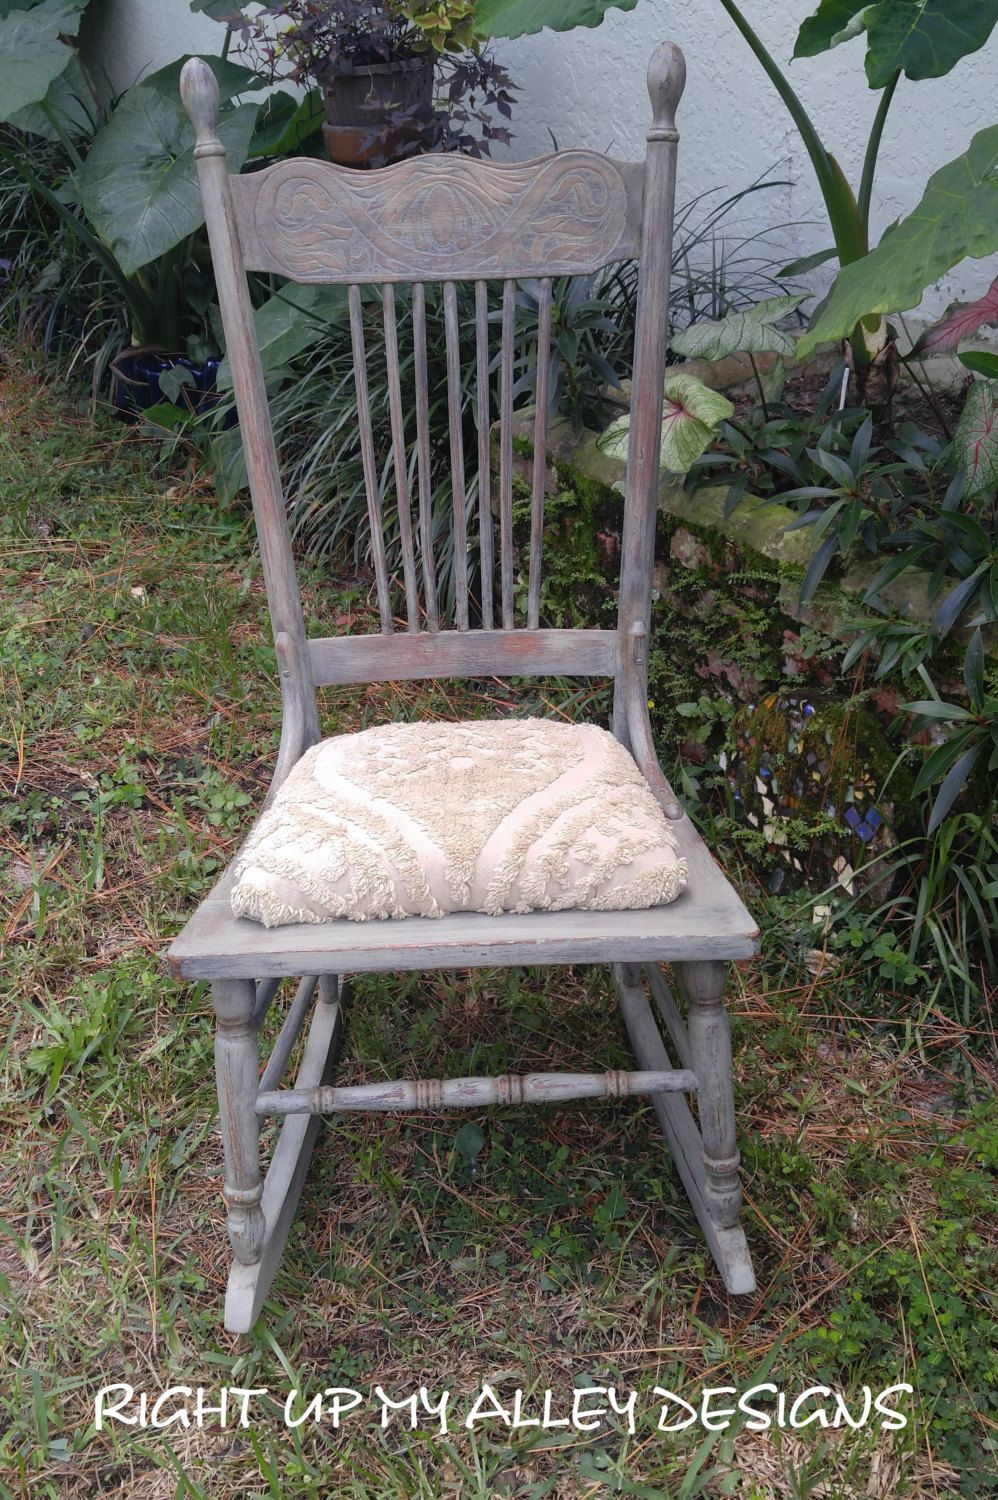 Chair shabby chic painted rocking chairs - Old Painted Rocking Chair Annie Sloan Painted Chair Chateau Grey Chair Oak Rocking Chair Vintage Chair Green Rocking Chair Shabby Chic Chair